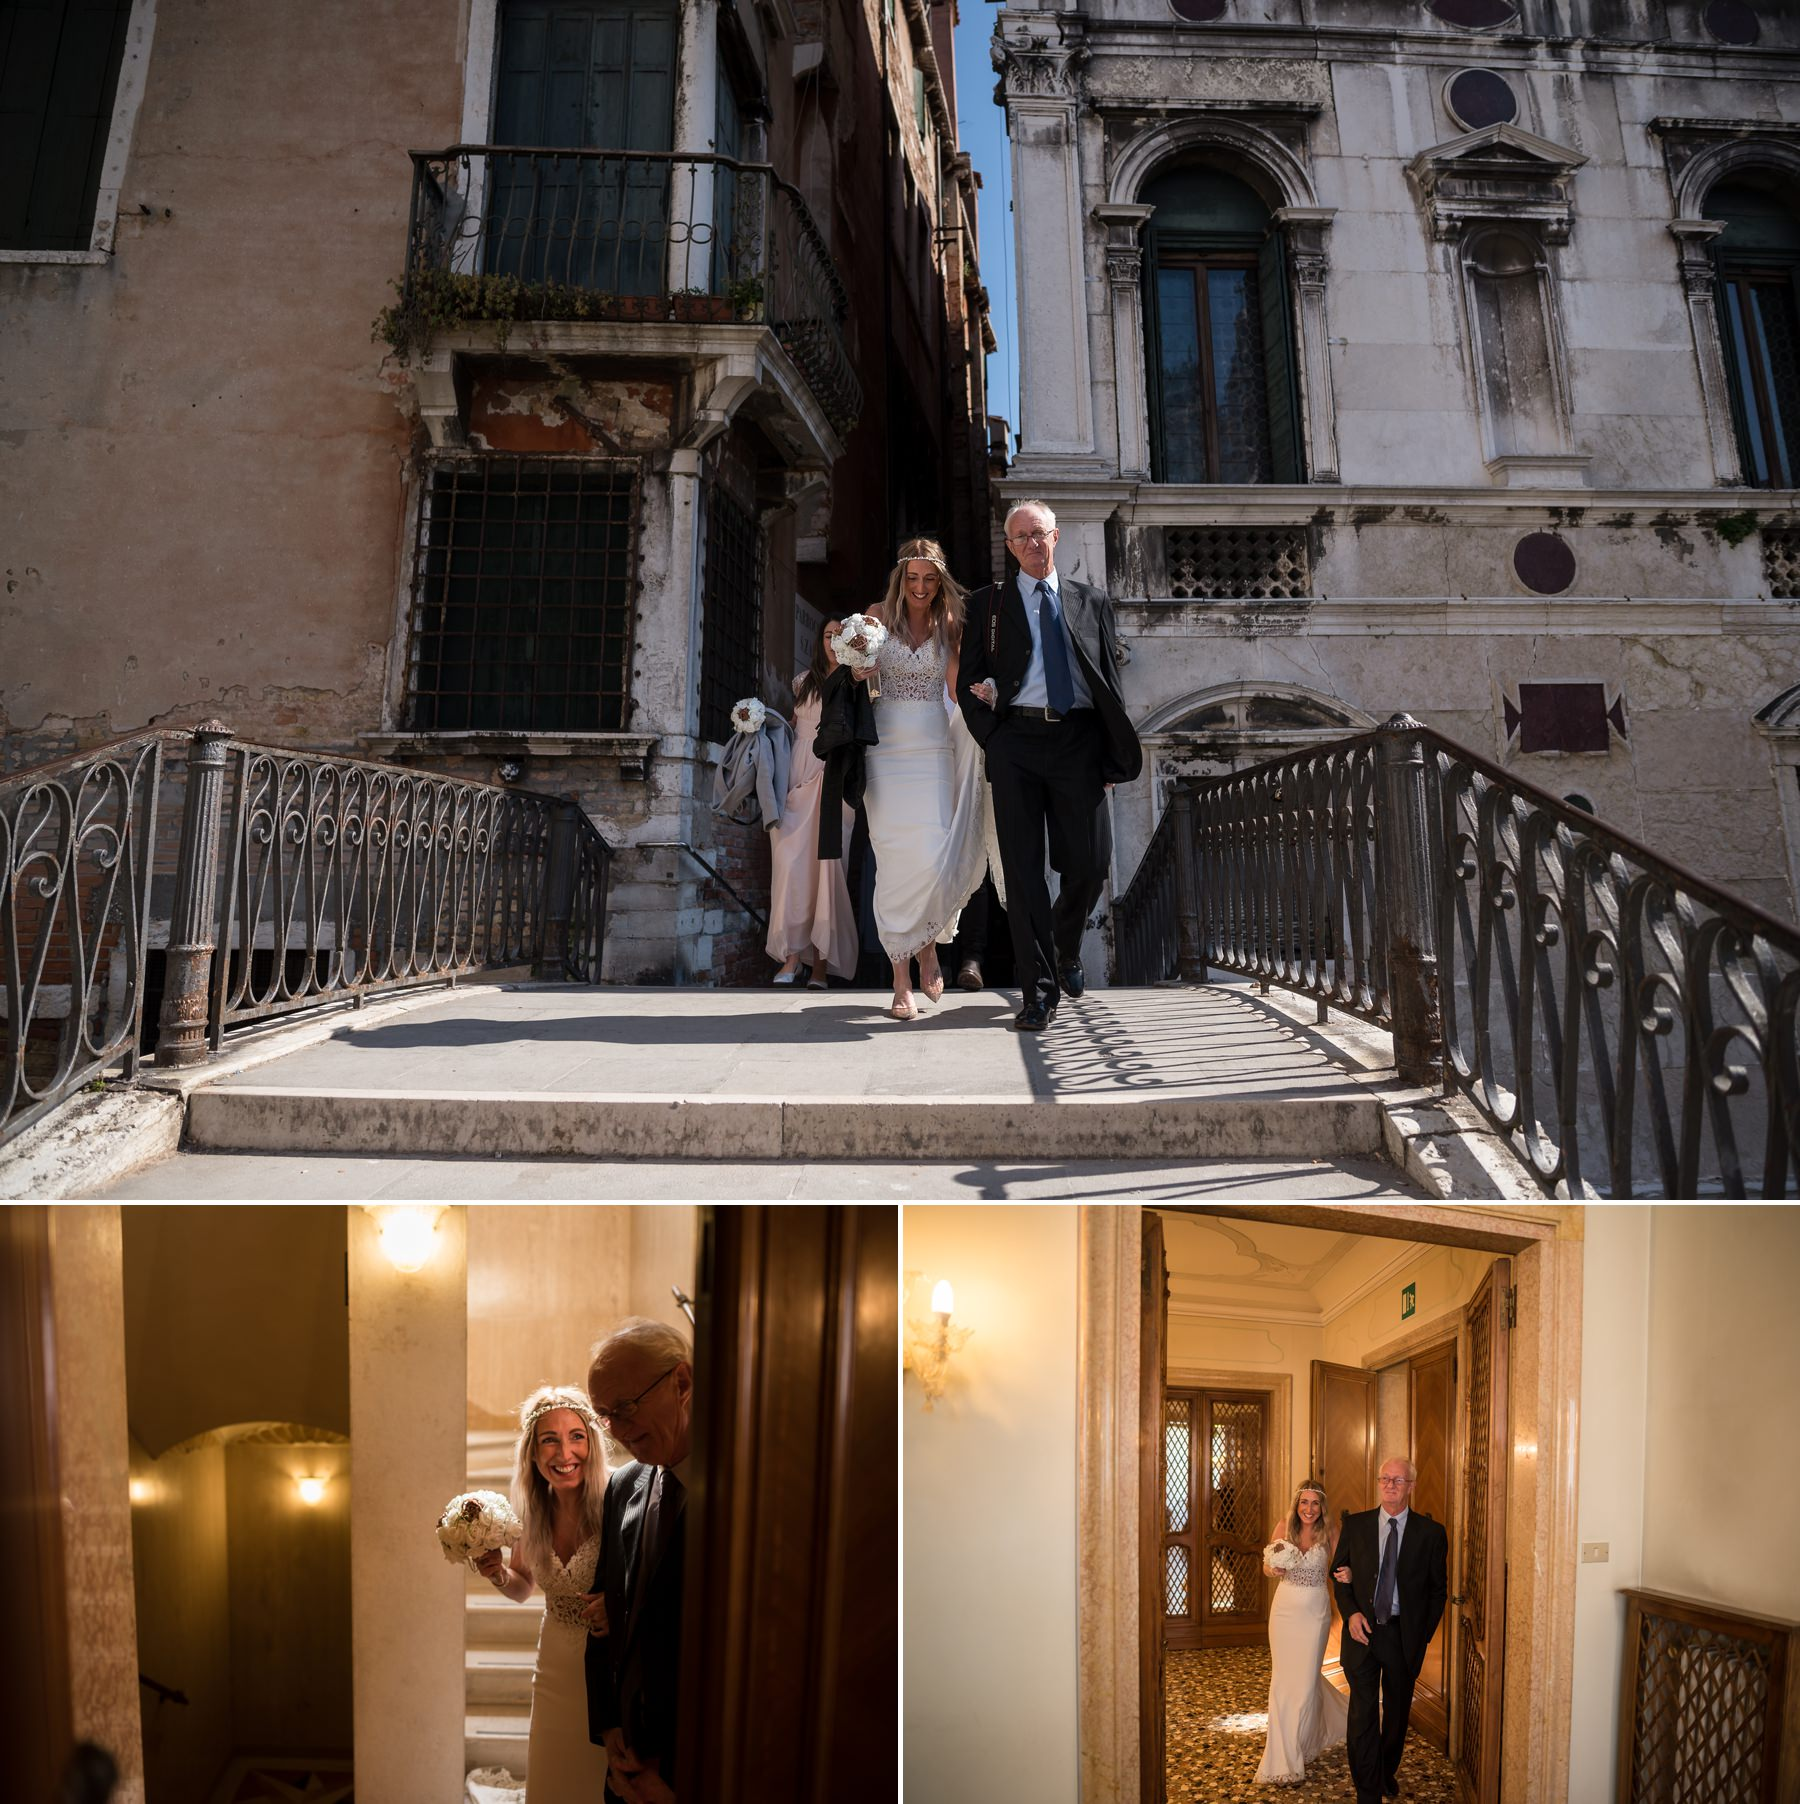 Palazzo Cavalli Venice father walks the bride down the aisle